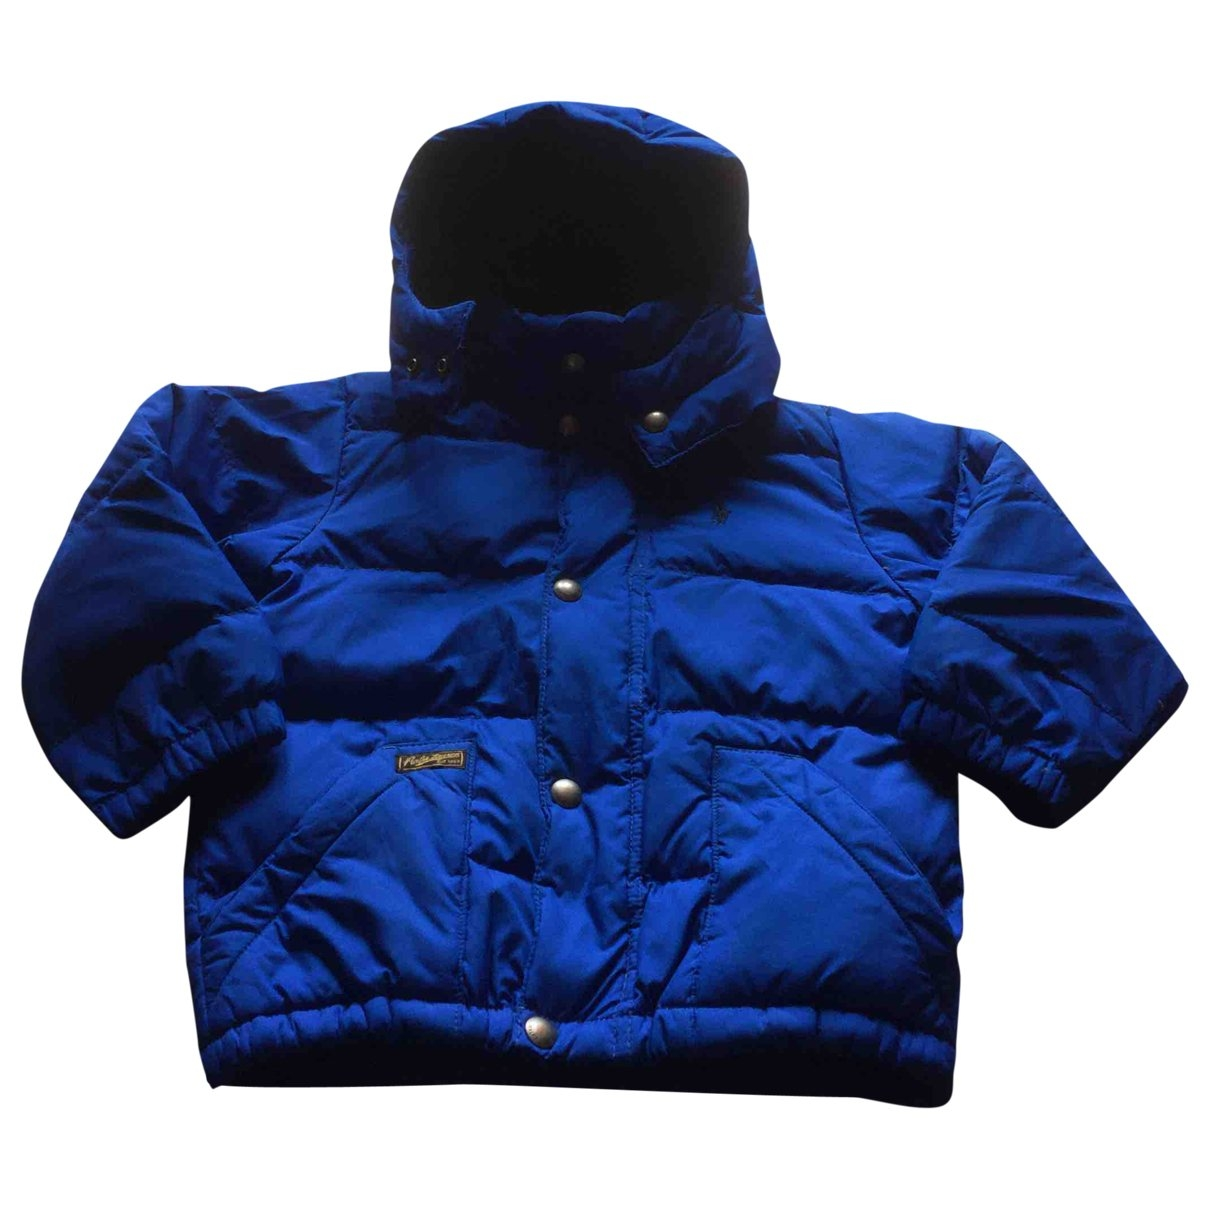 Polo Ralph Lauren \N Blue jacket & coat for Kids 3 years - up to 98cm FR